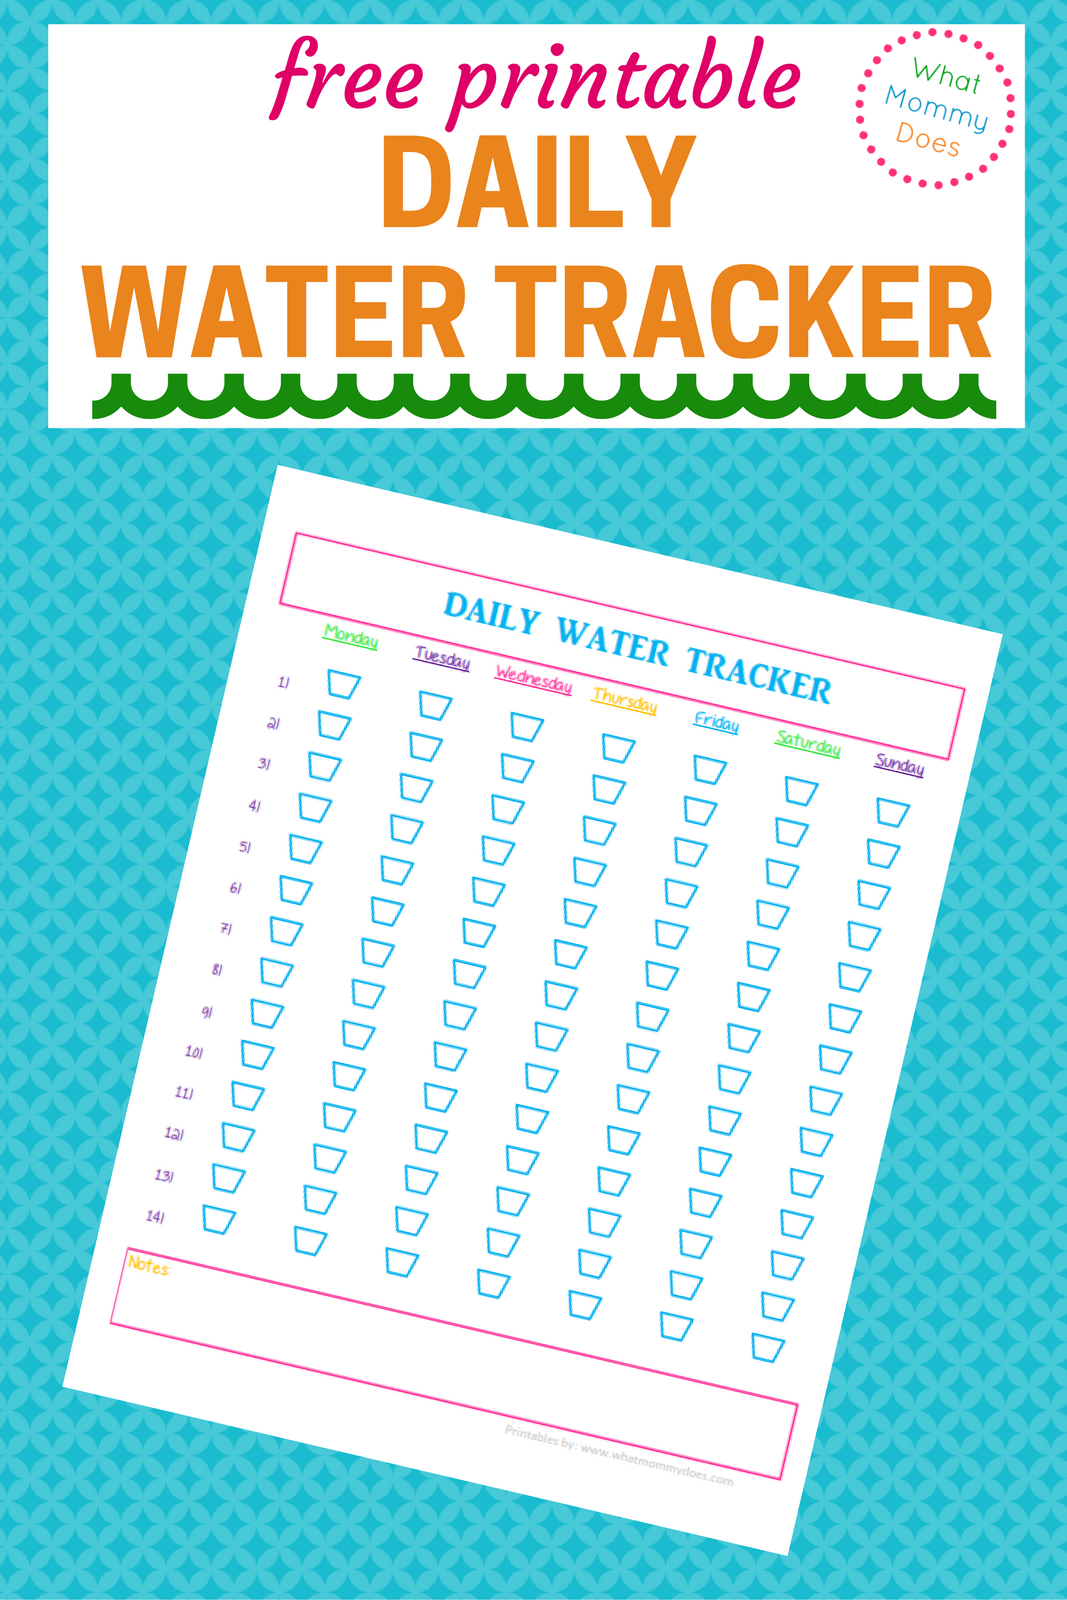 Free Water Tracker Printable - I try to drink at least 8 glasses of water a day but like to hit 10-14 to feel my best and aid weight loss. This daily water intake chart is the perfect tracking template for my 30 day water challenge to keep my water consumpton on point!